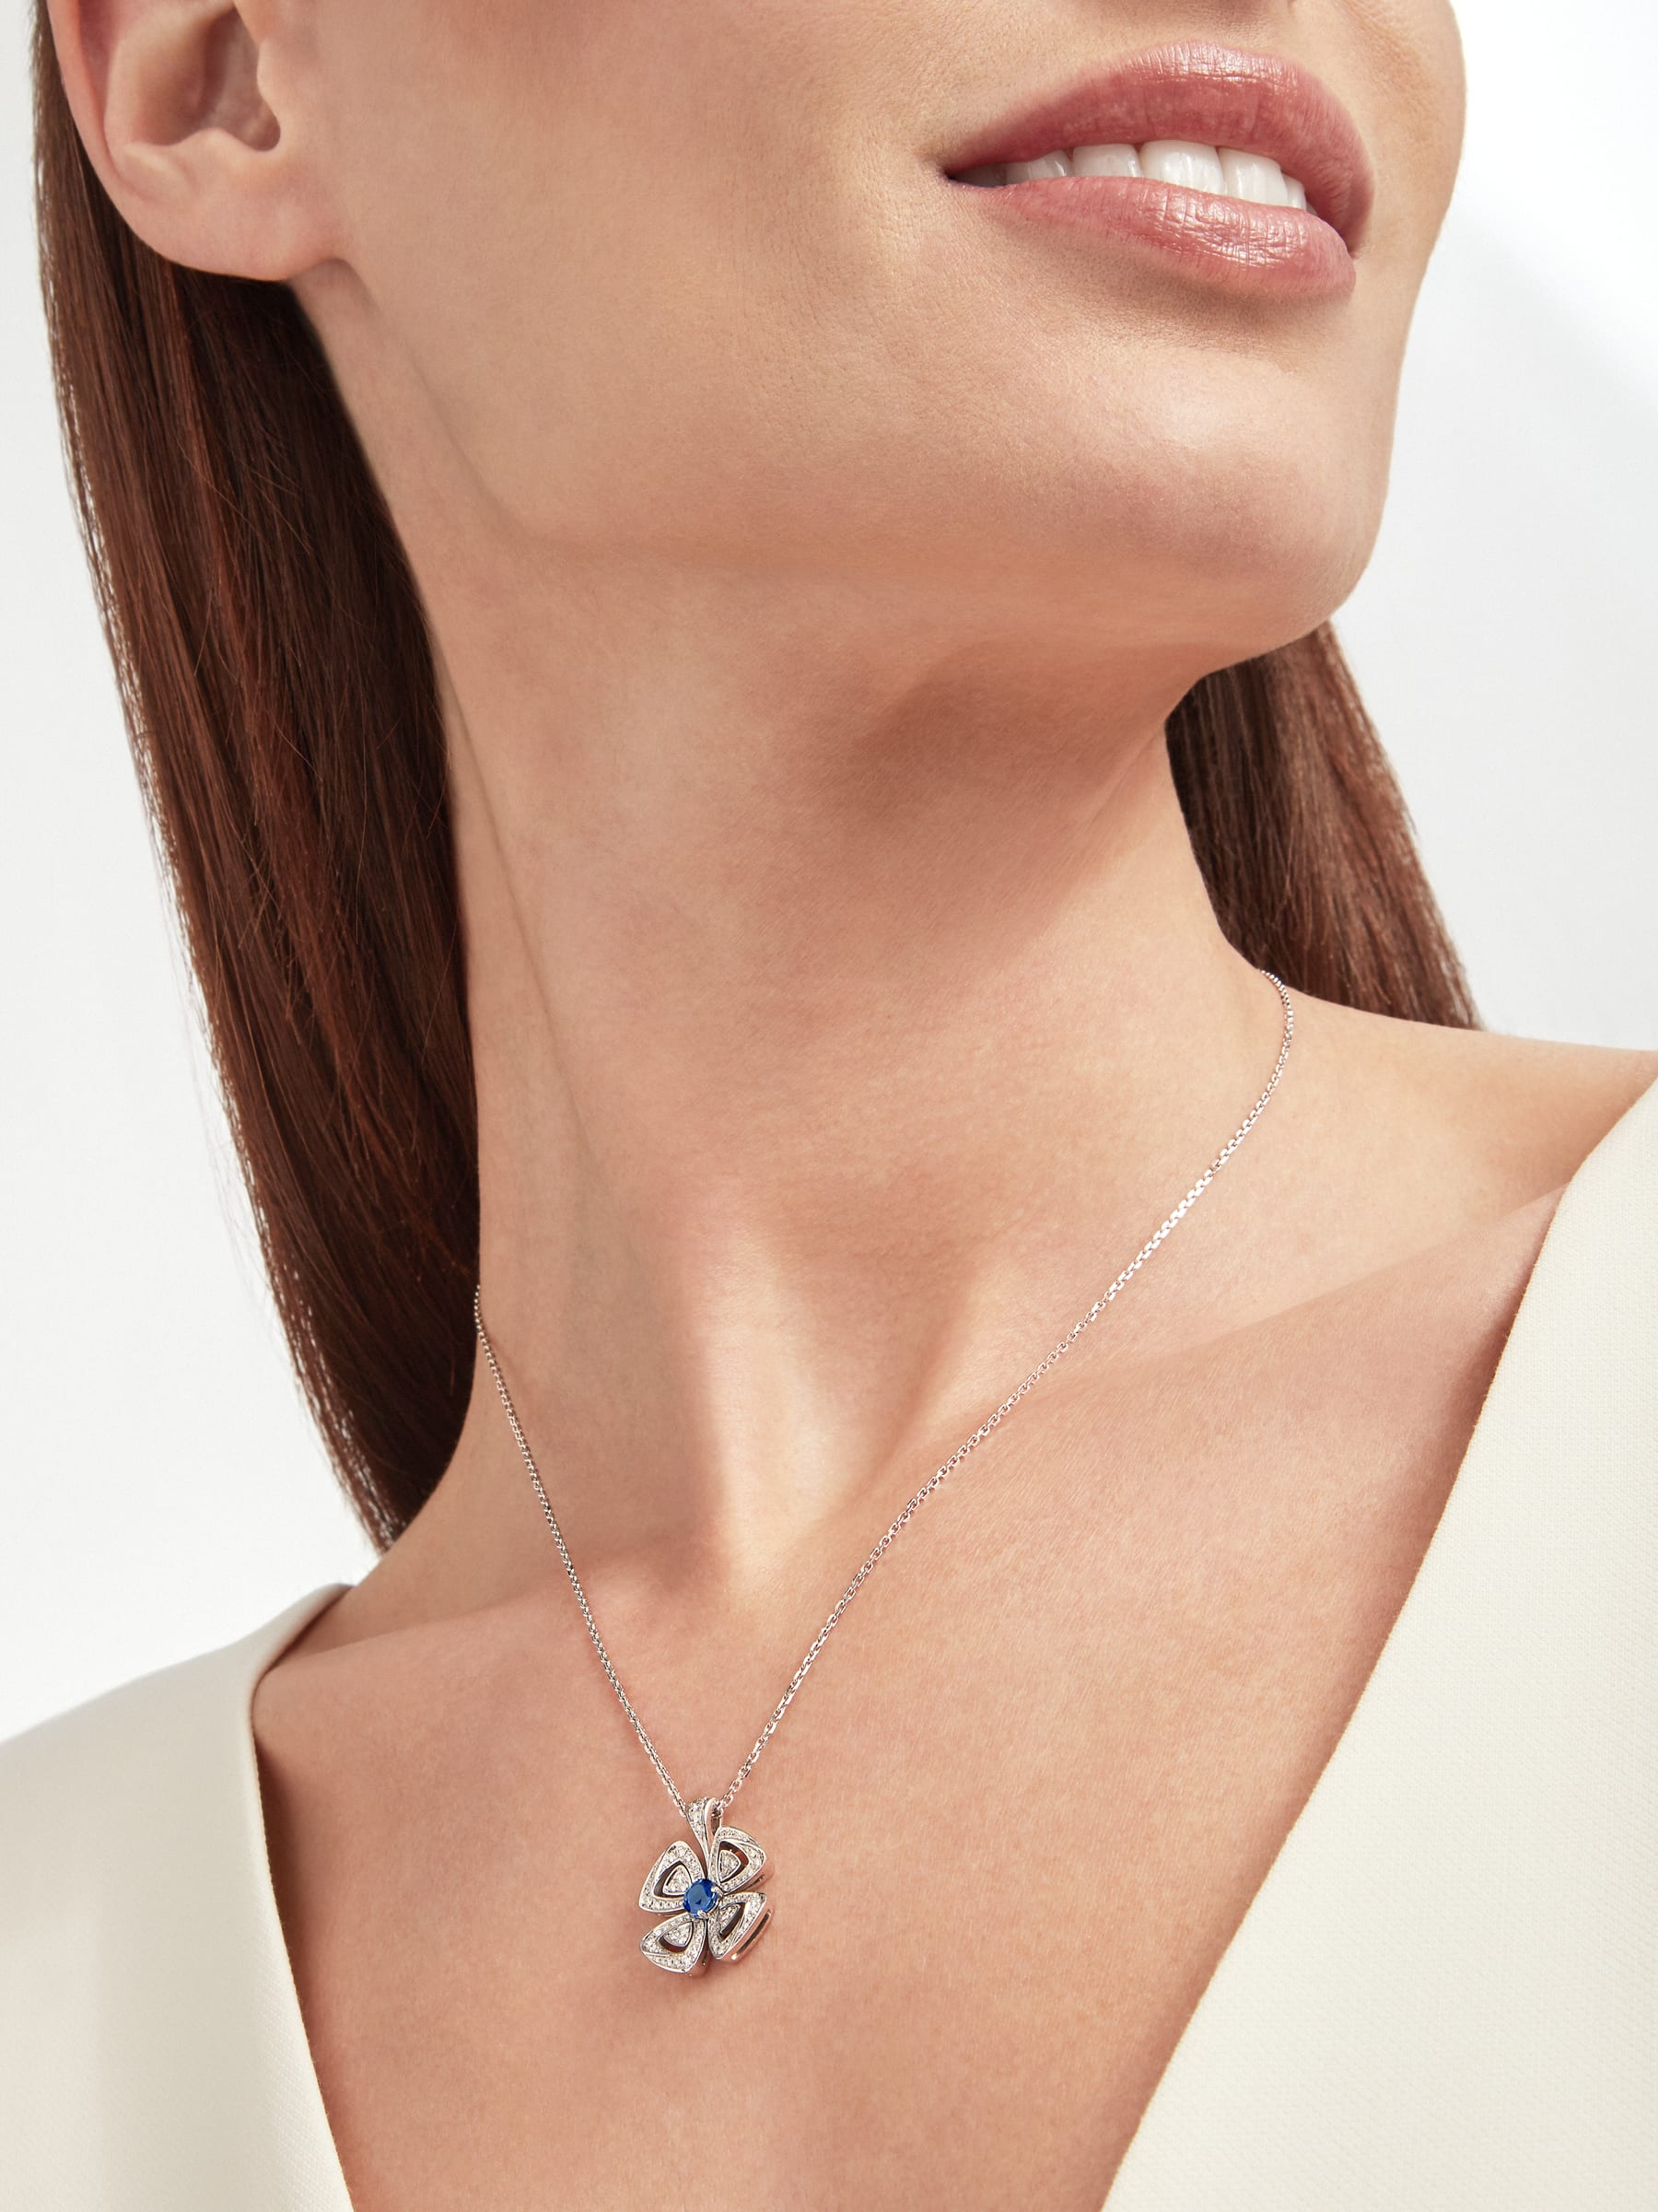 Fiorever 18 kt white gold pendant necklace set with a central brilliant-cut sapphire (0.43 ct) and pavé diamonds (0.31 ct) 358426 image 5